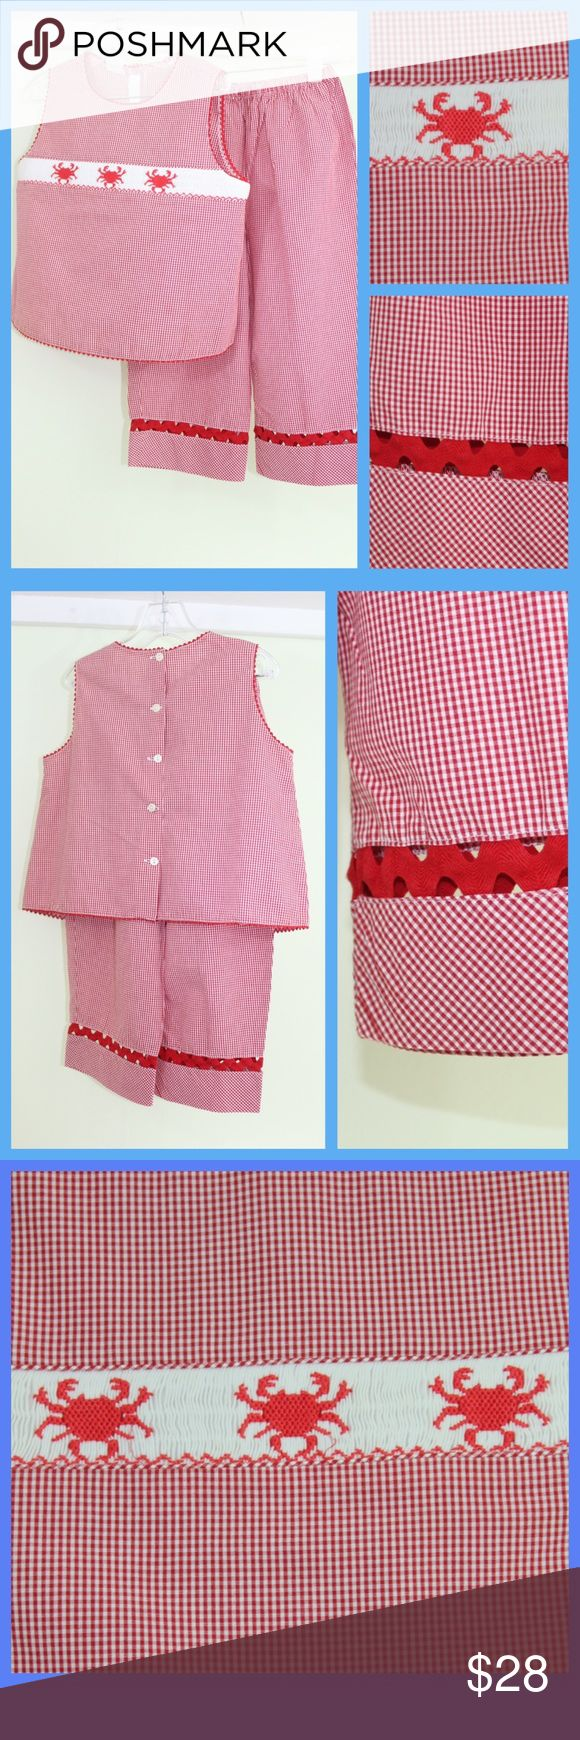 Vive la Fete,  Crabby Fun! Red Gingham Smocked Set Vive le Fete Crabby Fun! Red Gingham Sleeveless Smocked Outfit  - Two piece, sleeveless pants outfit - Smocked Inset of Three Red Crabs 🦀  - Red and White Gingham/Check - Trimmed in red ric-rac at arms and neck - Unique cutout ric-rac accent near hem of pants - Elastic waist - Condition is Flawless Vive la Fete Matching Sets